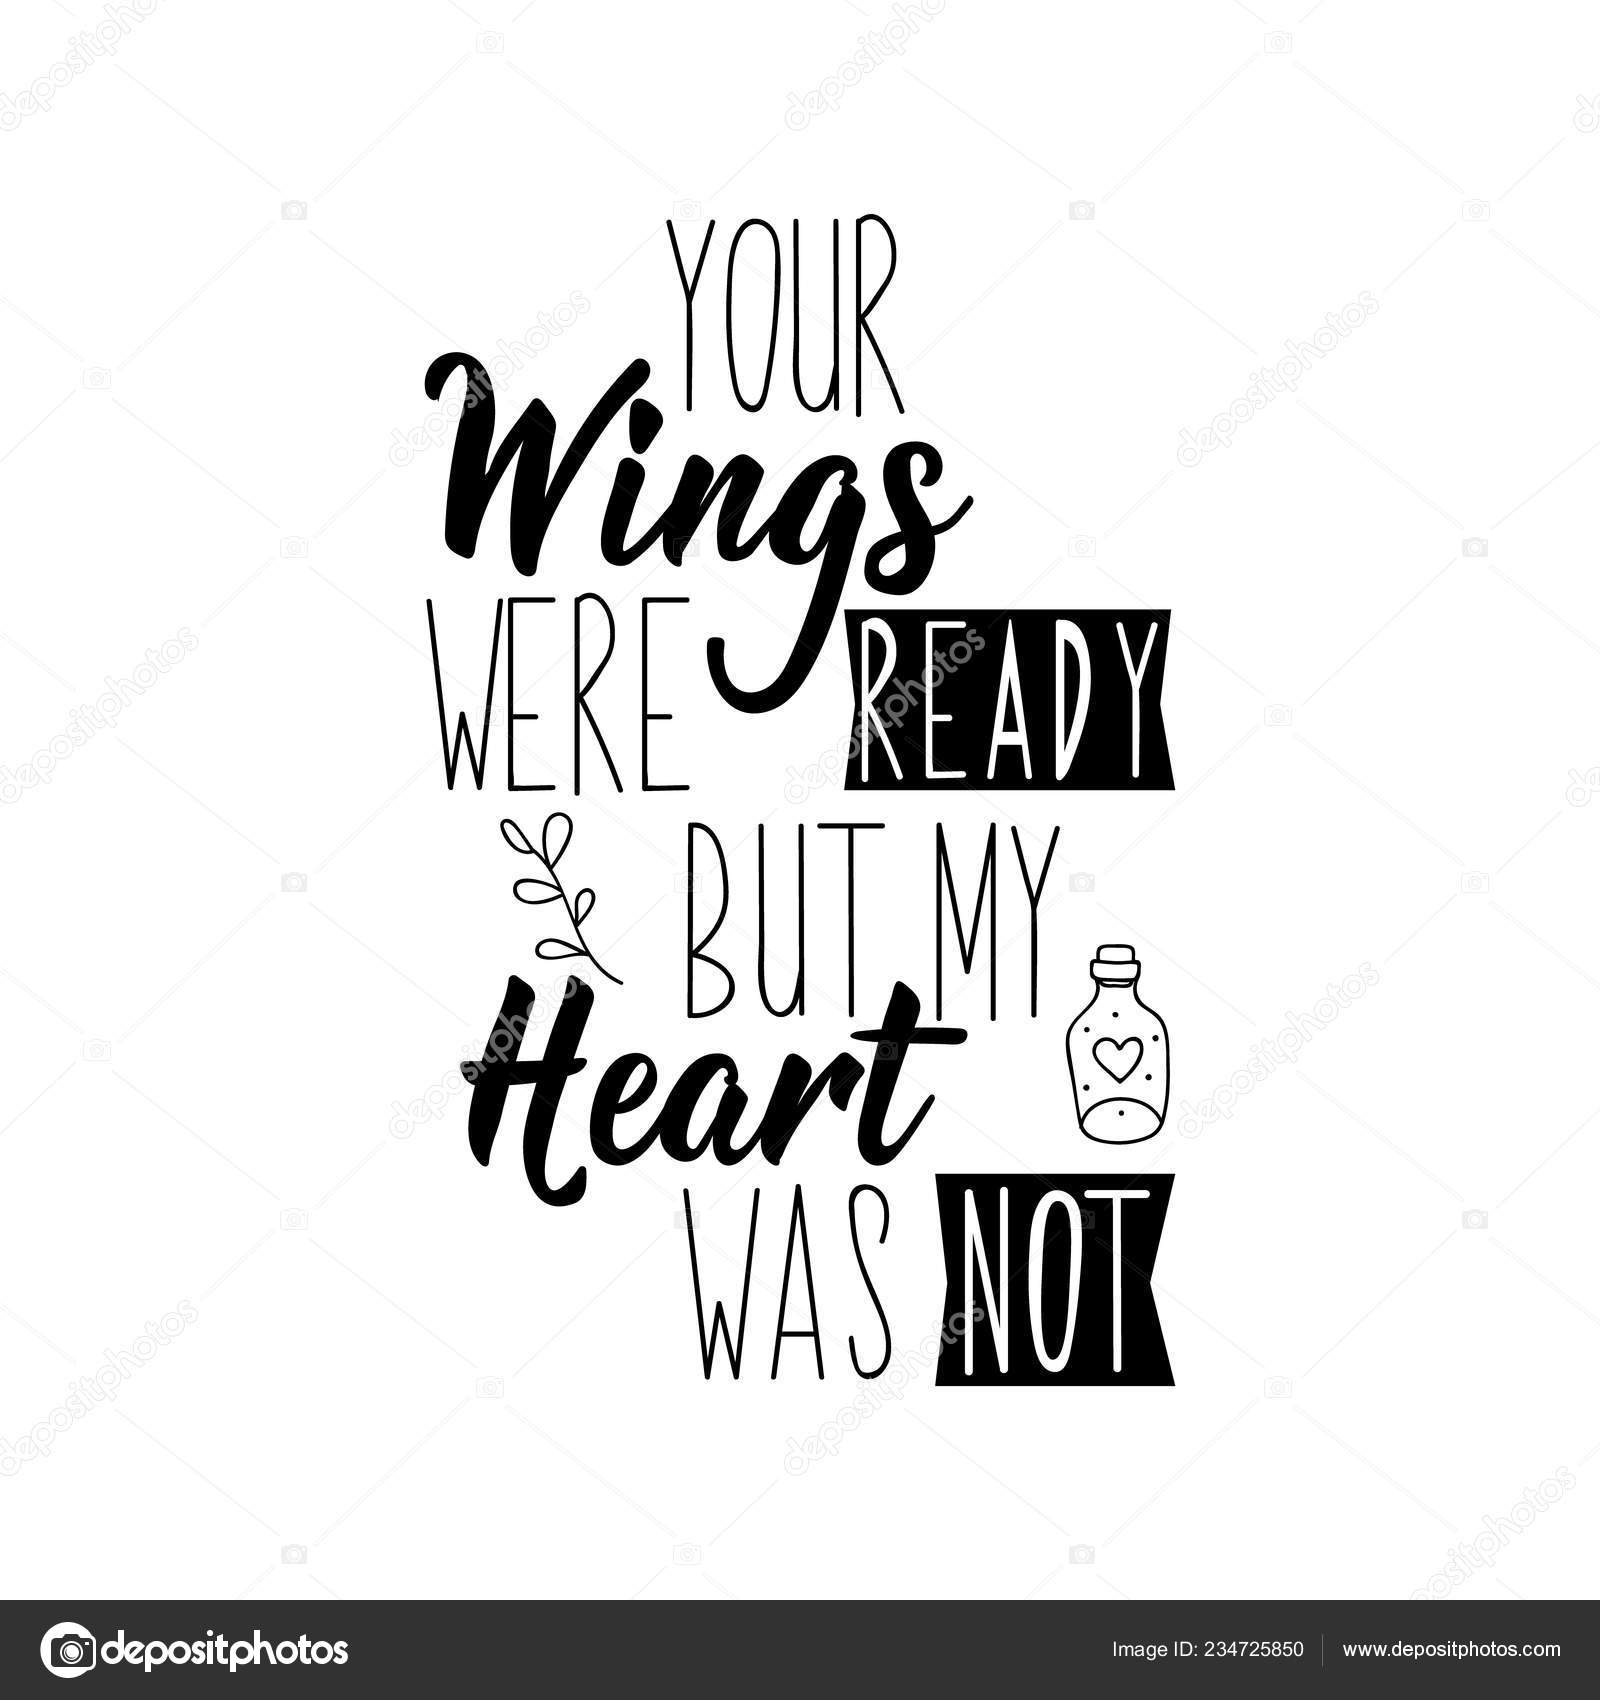 Your Wings Were Ready Heart Funny Lettering Inspirational